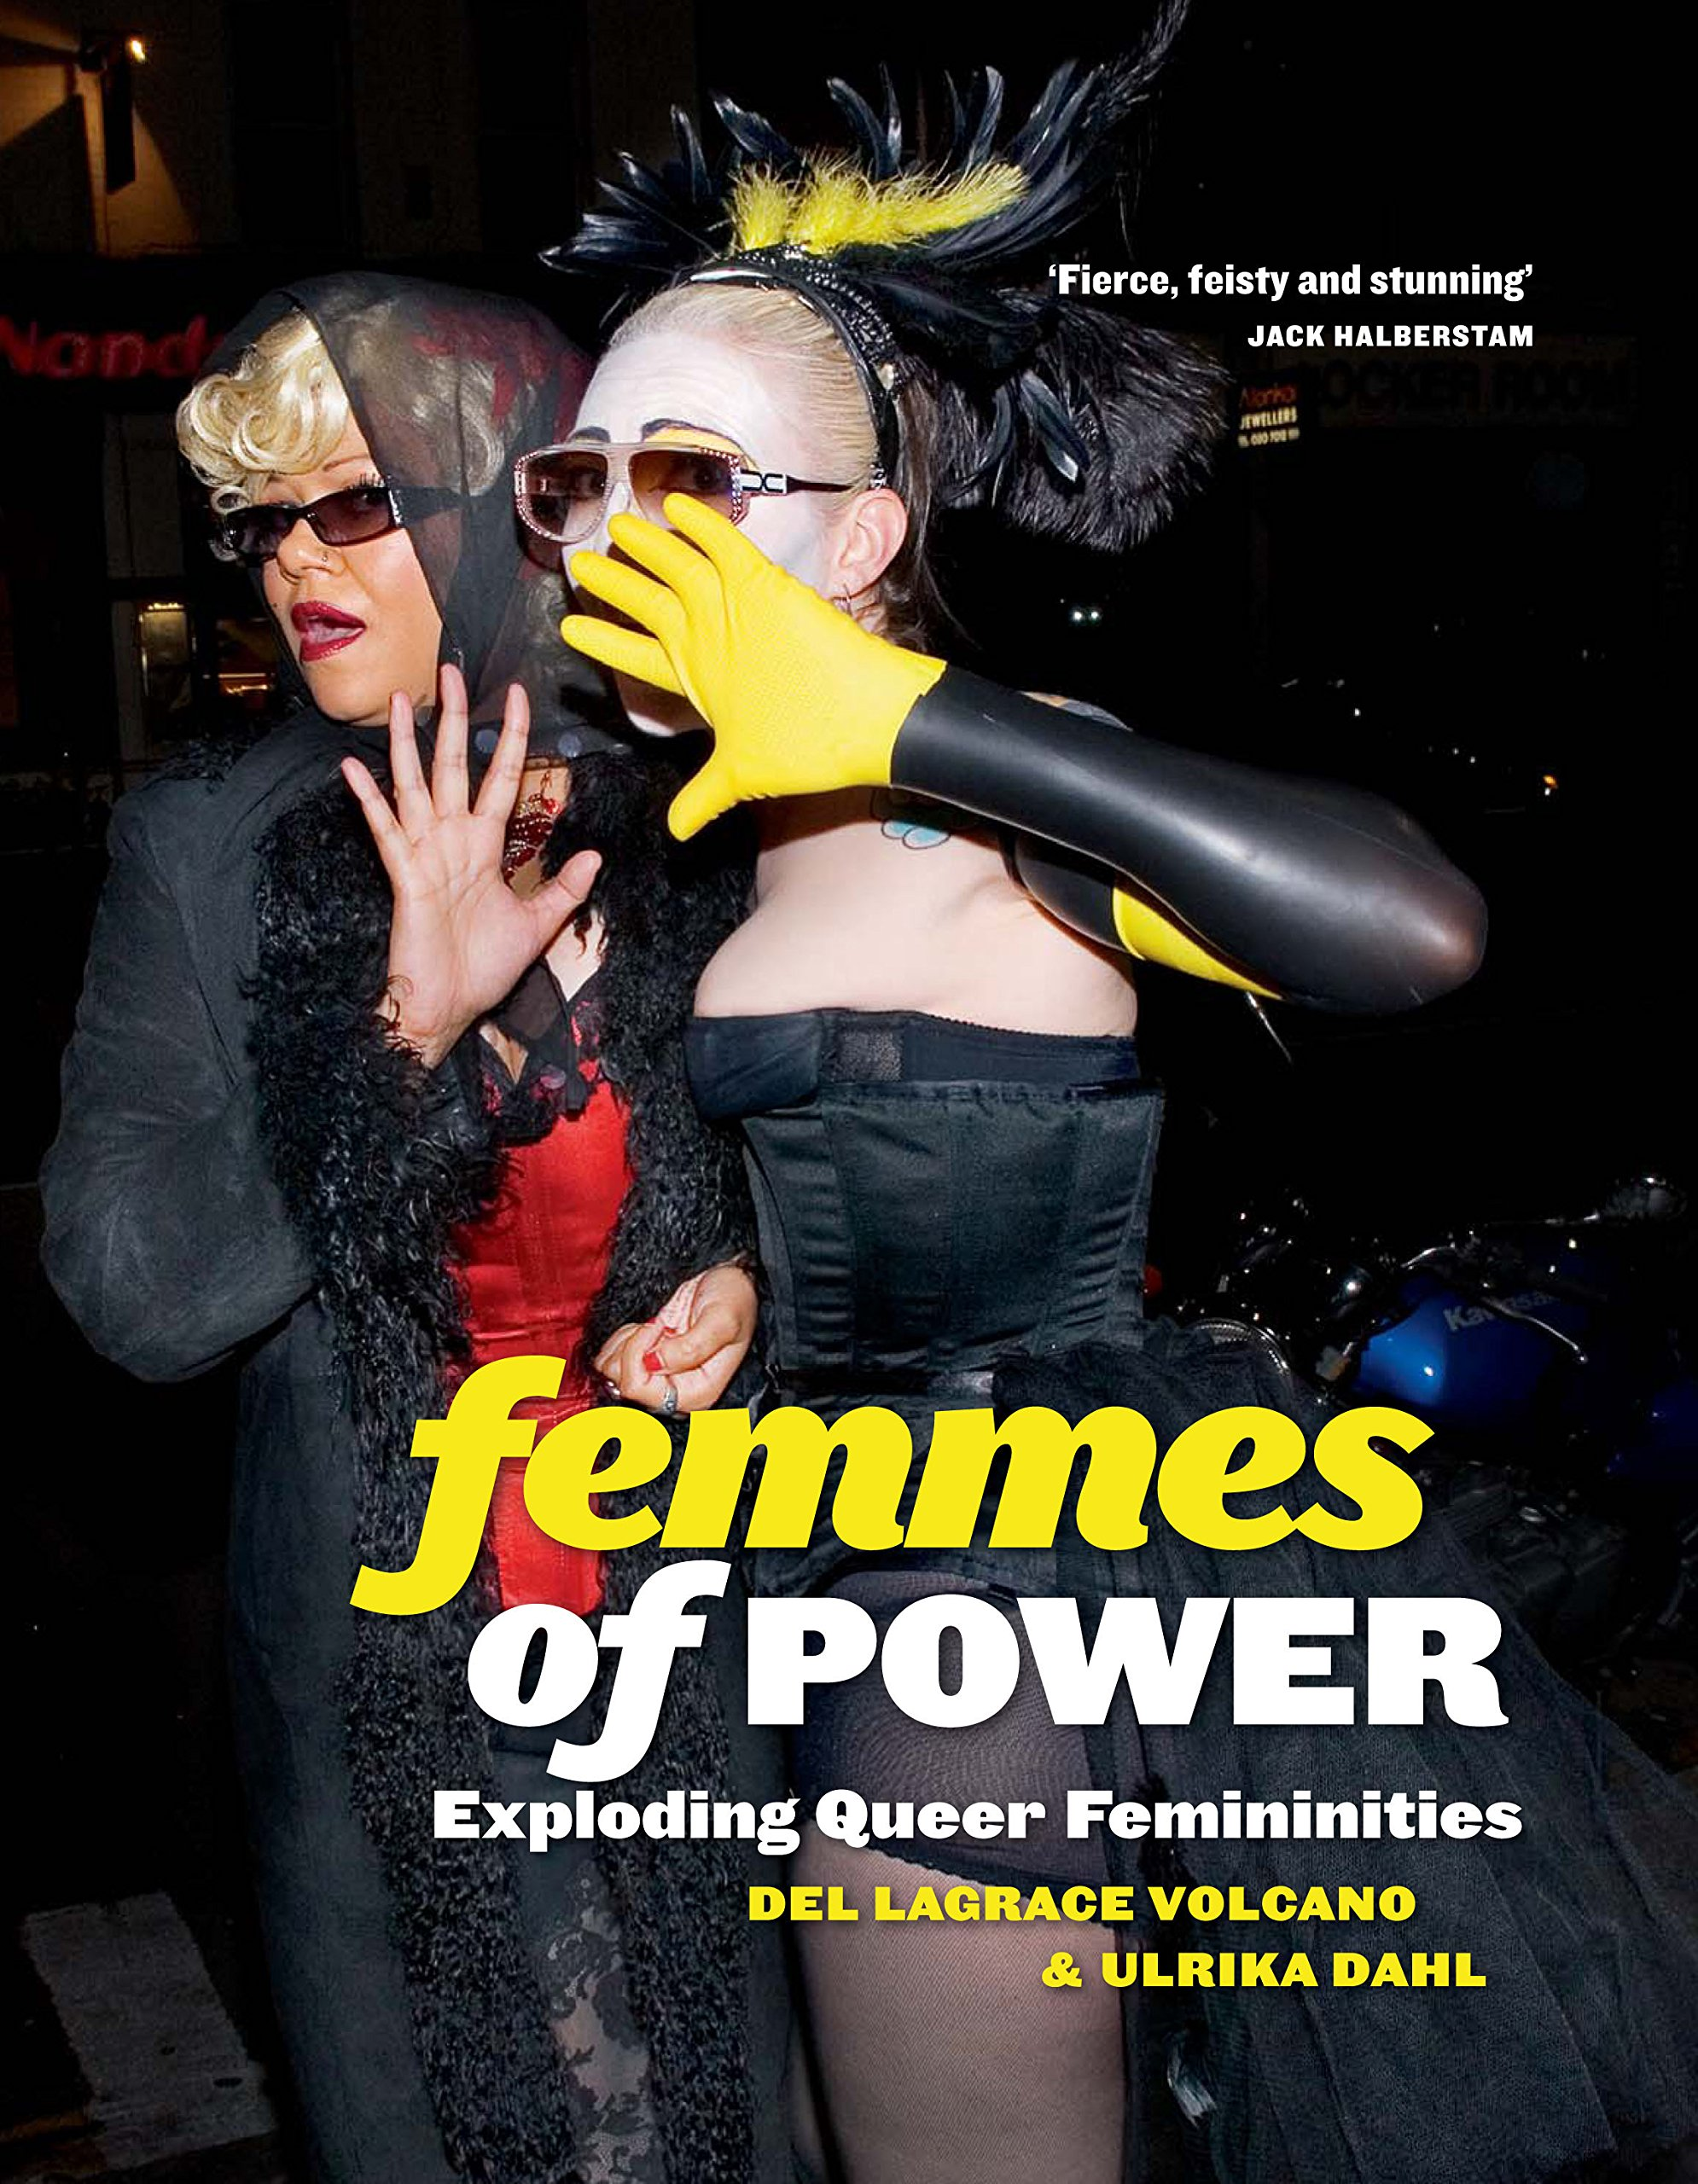 queer femme meaning